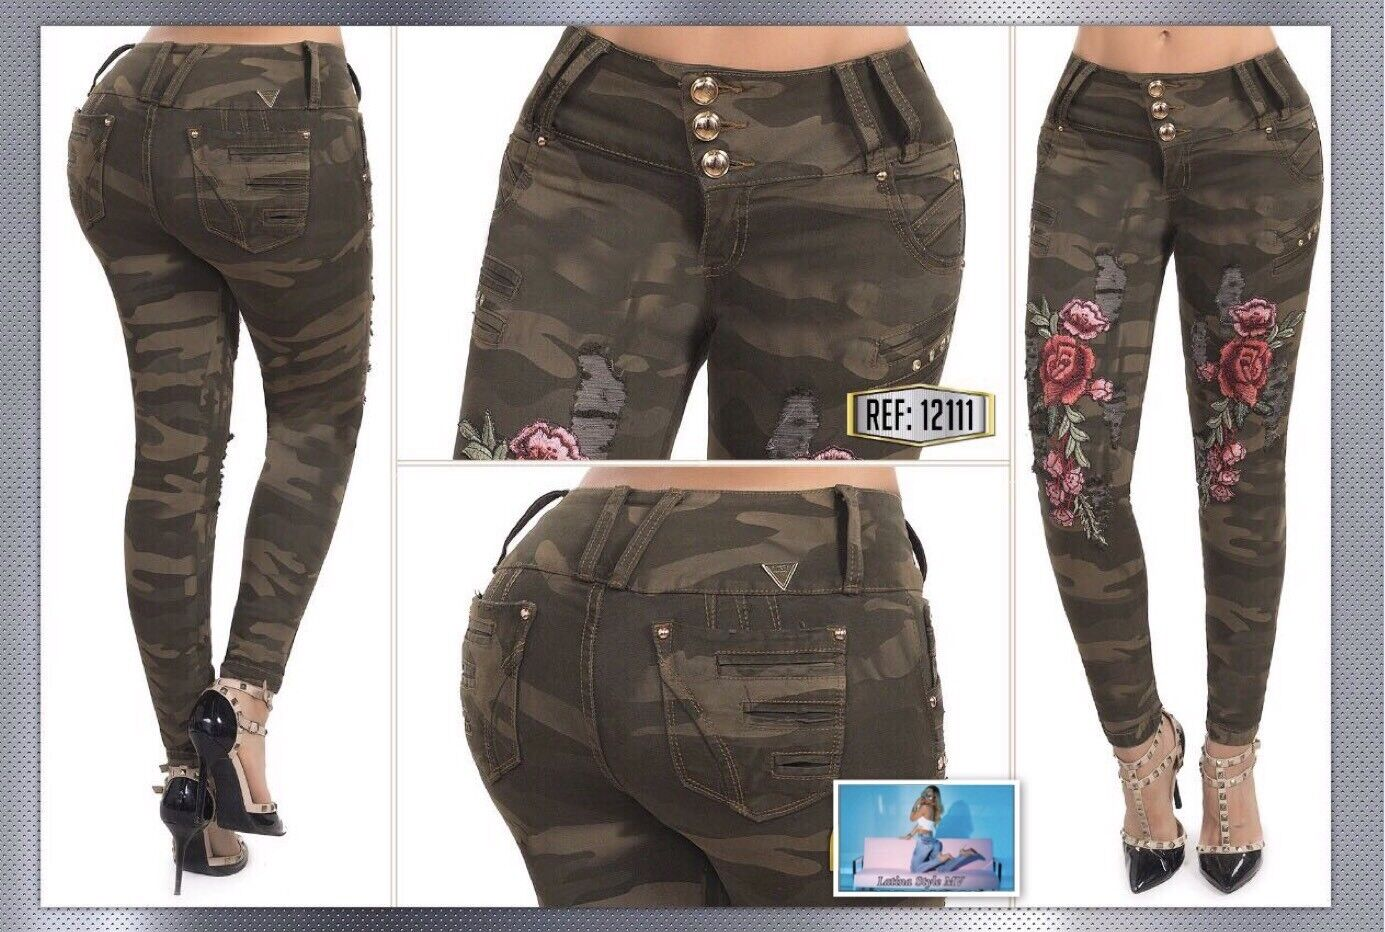 Exclusive Colombian Butt Lift  Jeans Sizes  1 2,3 4,5 6,7 8,9 10 USA